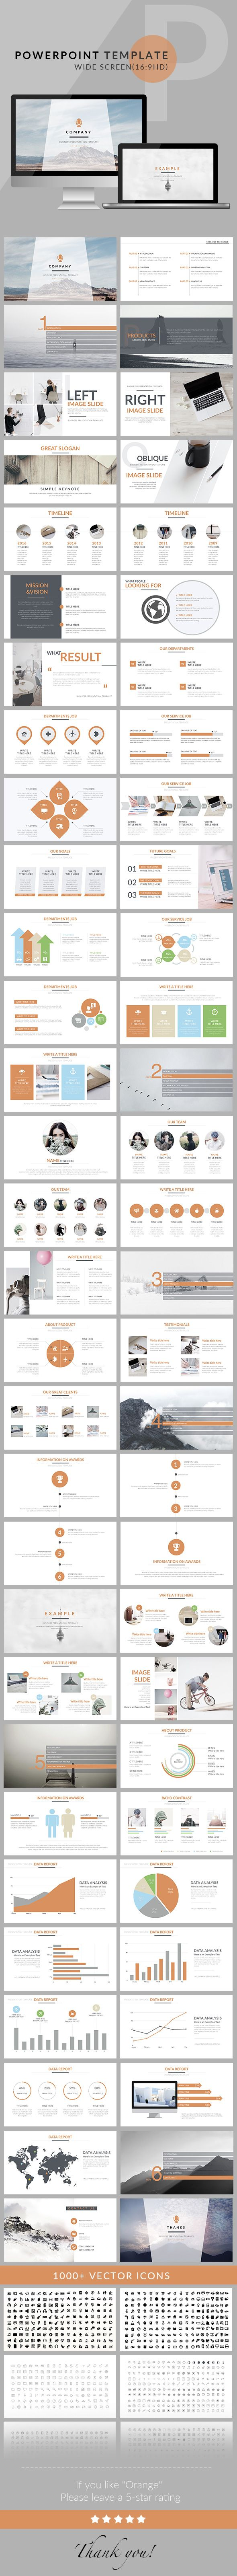 Orange - Clean trend business PowerPoint Templates - Business PowerPoint Templates                                                                                                                                                                                 More